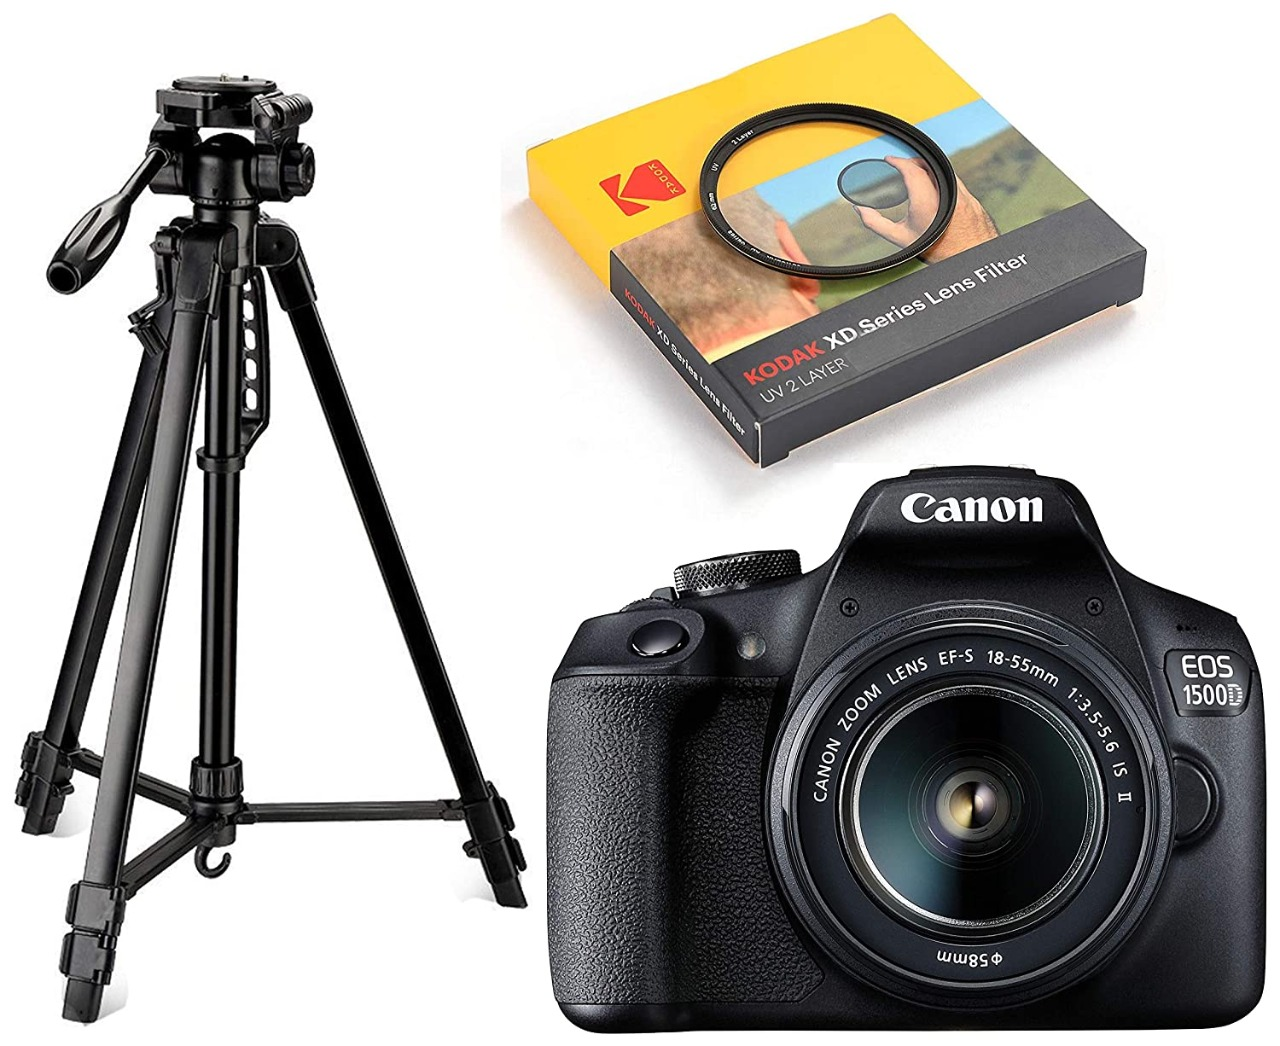 Amazon Navigation Night Sale: Learn About The Top 5 DSLR Camera Deals and Discounts Available on Amazon